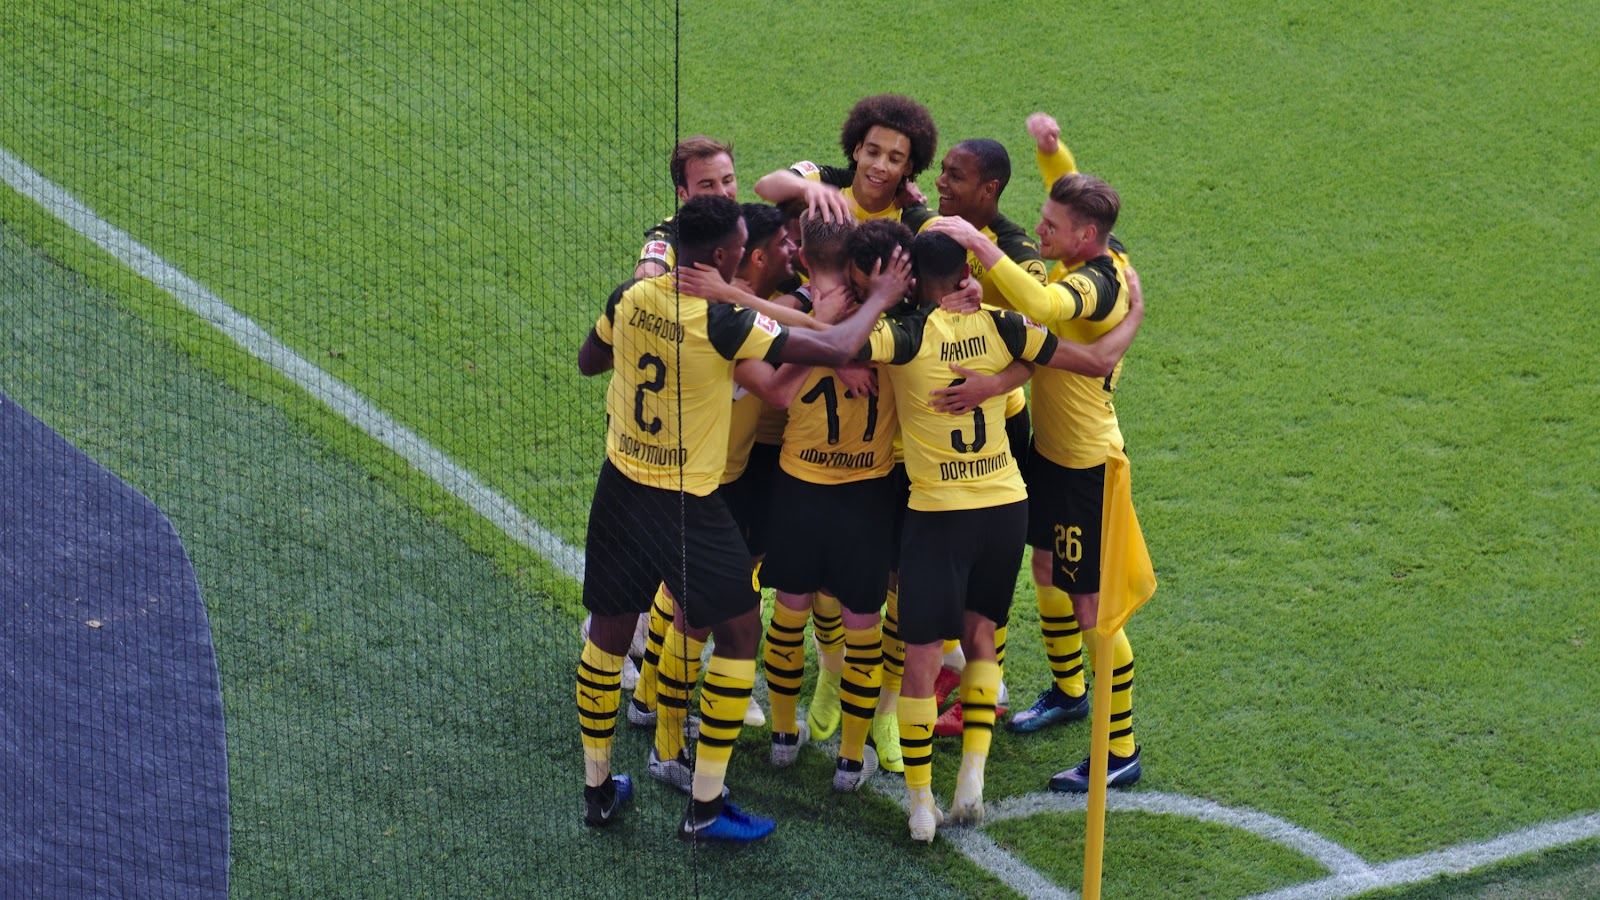 Borussia Dortmund players gather by a corner flag to celebrate a goal